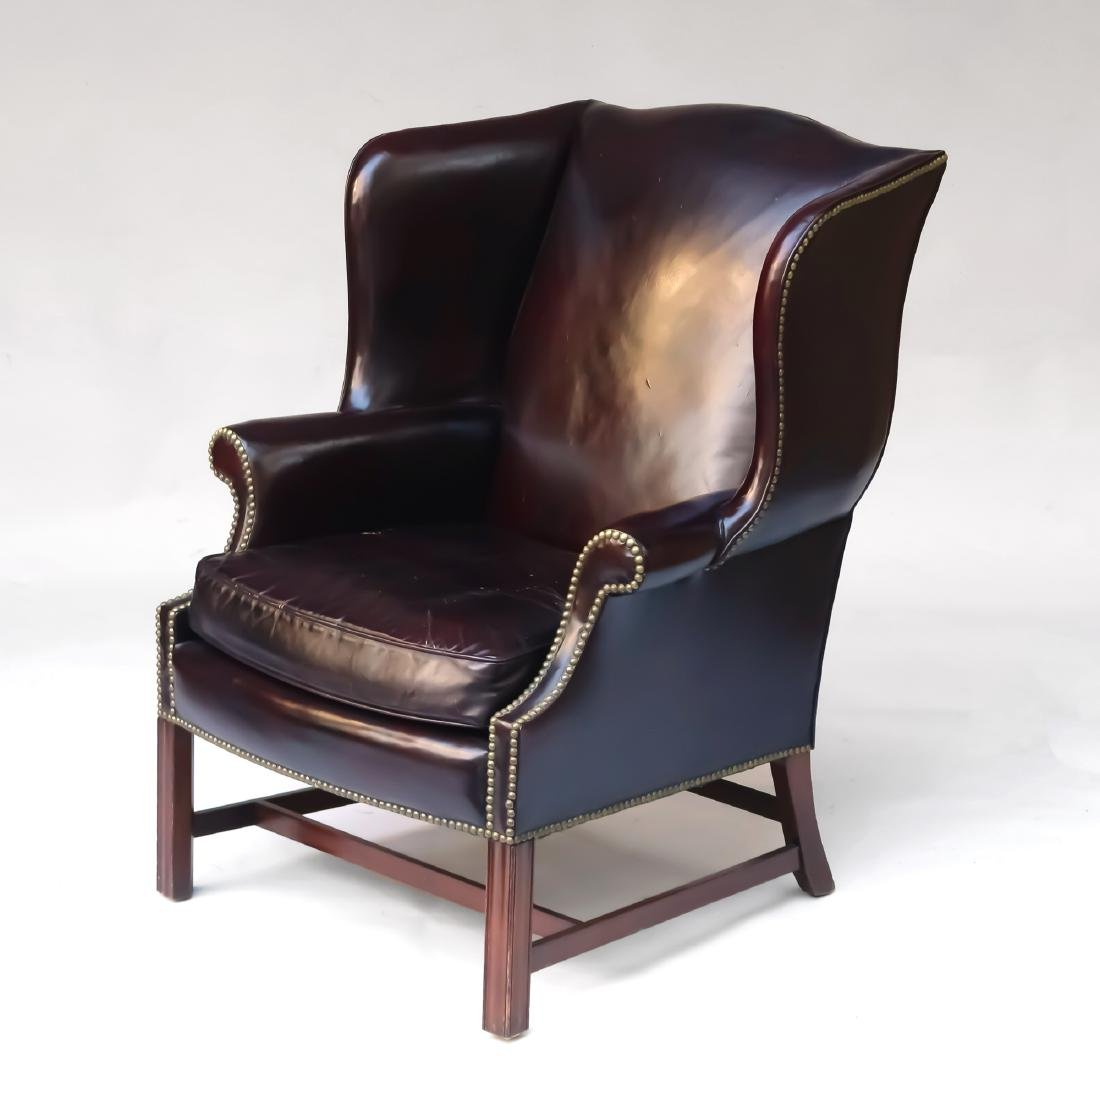 LEATHER CHIPPENDALE-STYLE WING CHAIR